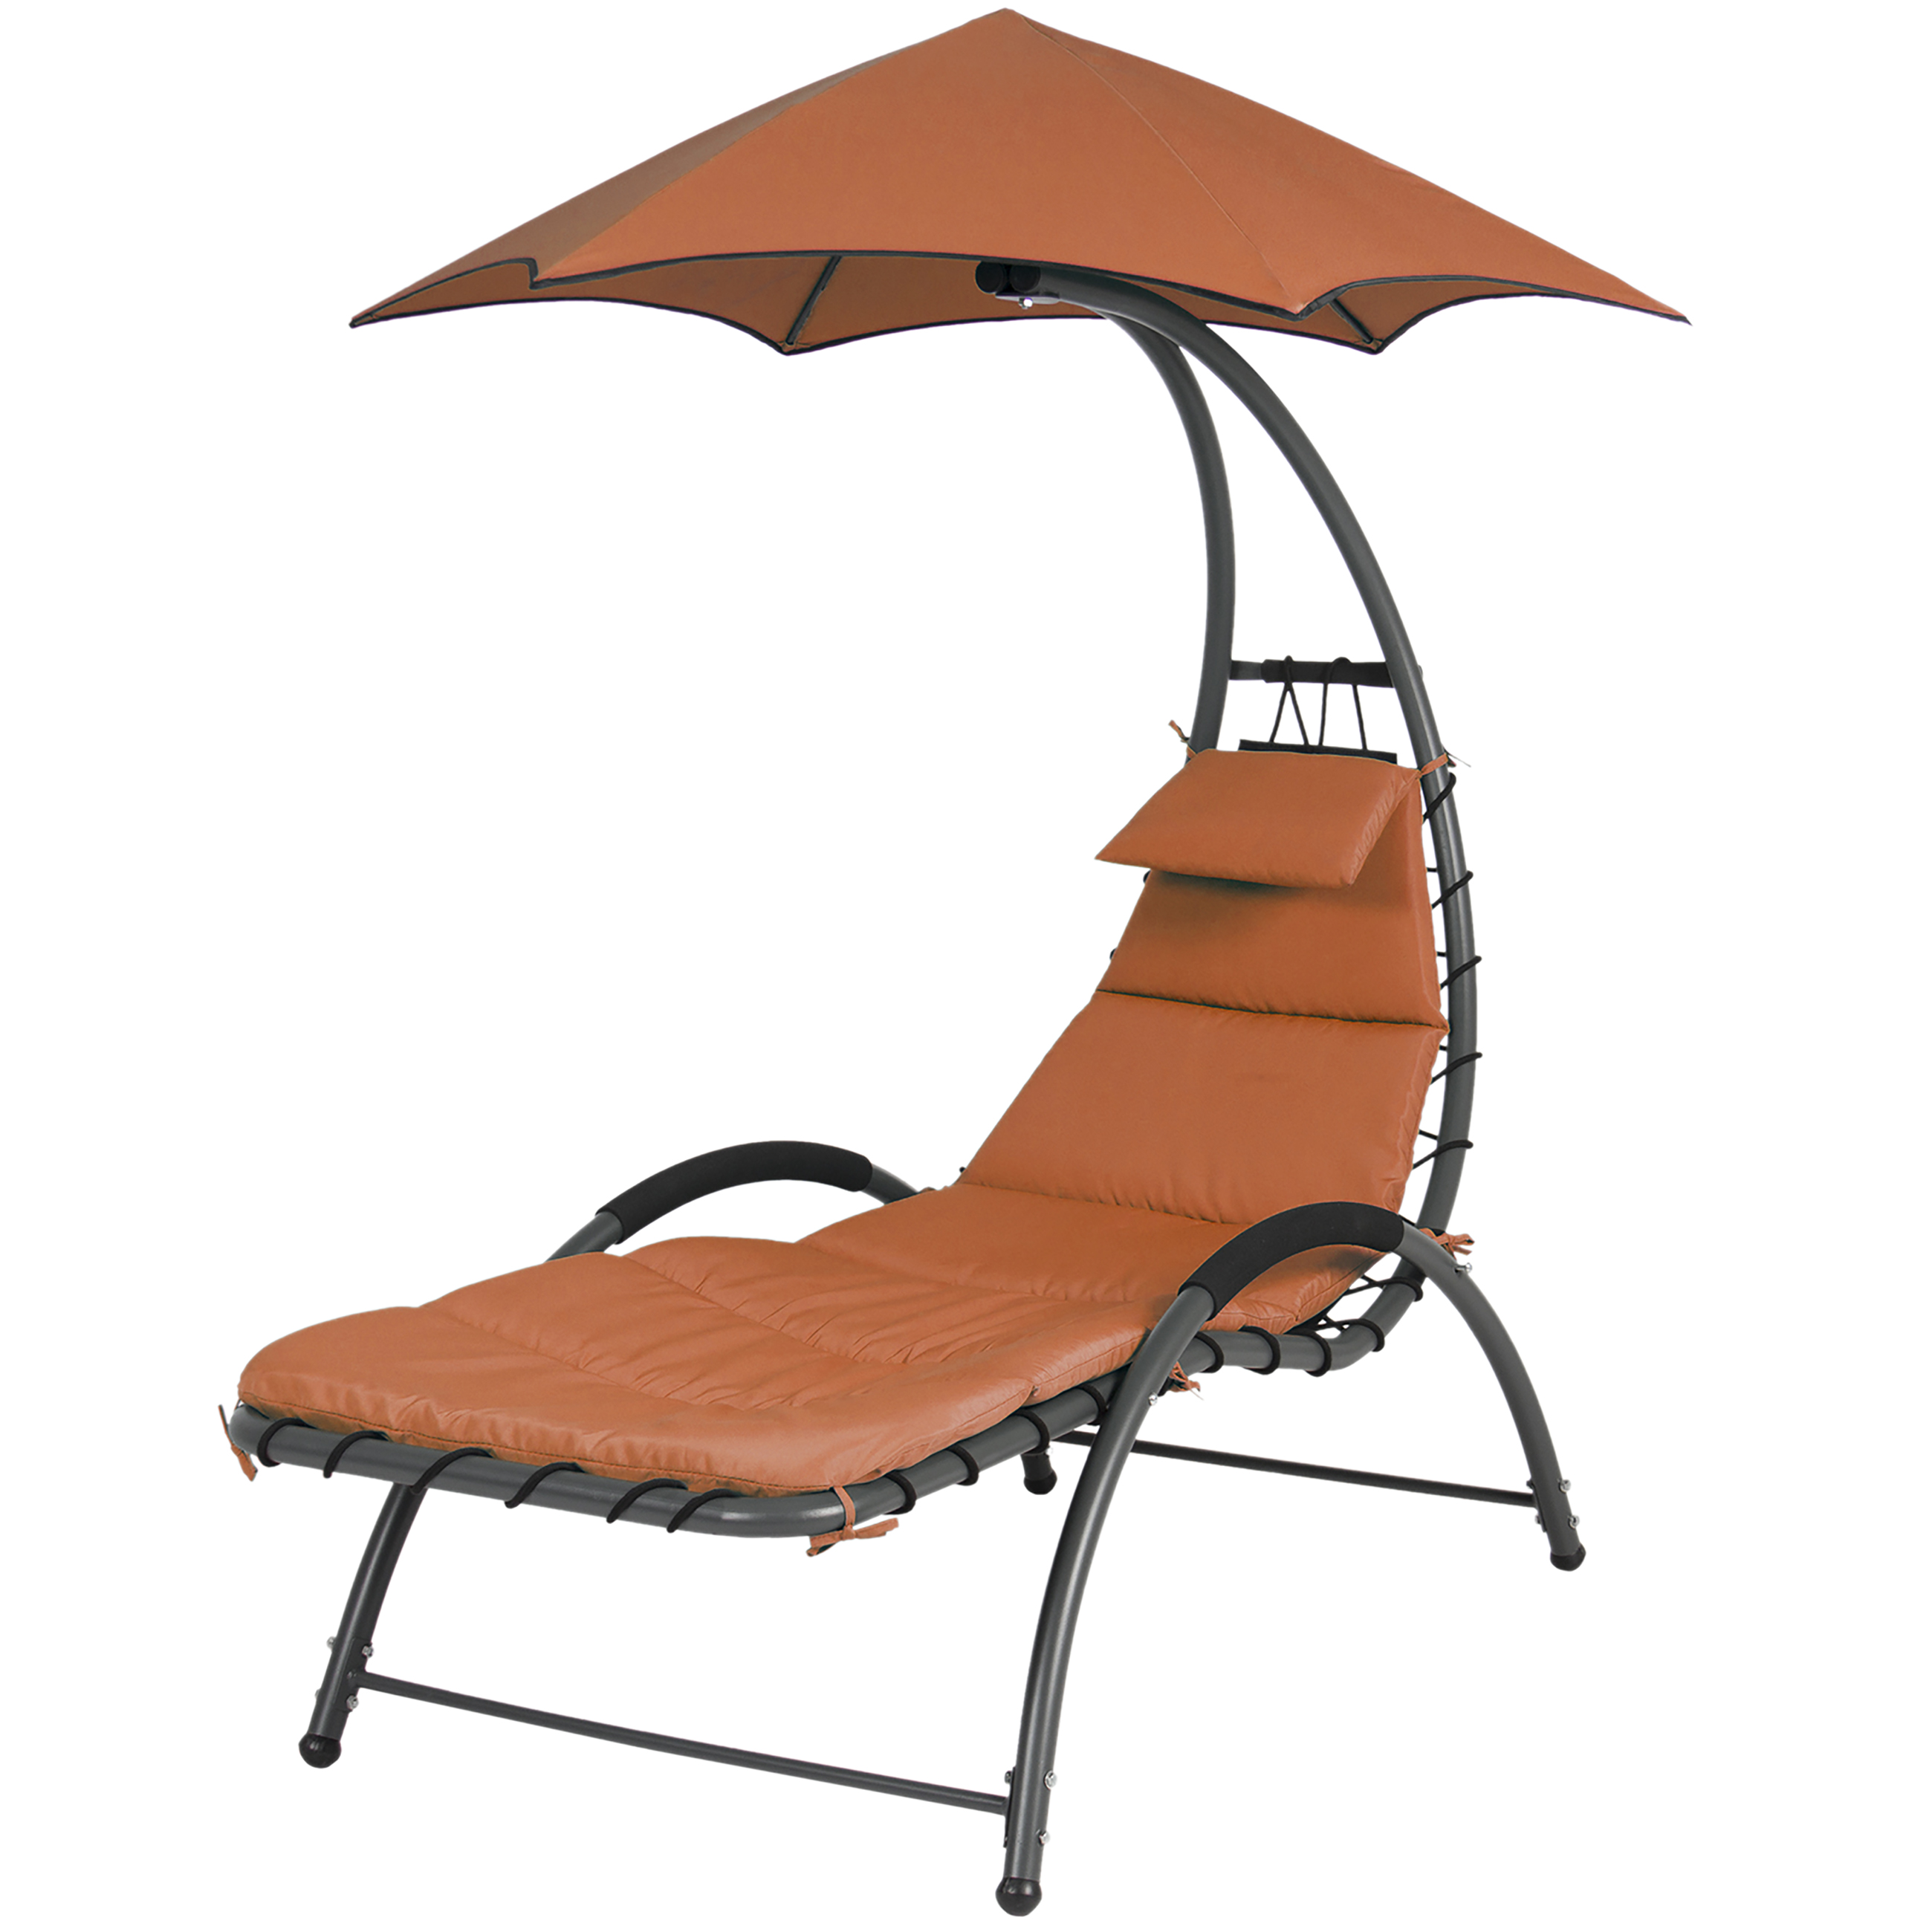 Beautiful Arc Curved Hammock Dream Chaise Lounge Chair Outdoor Patio Pool Furniture